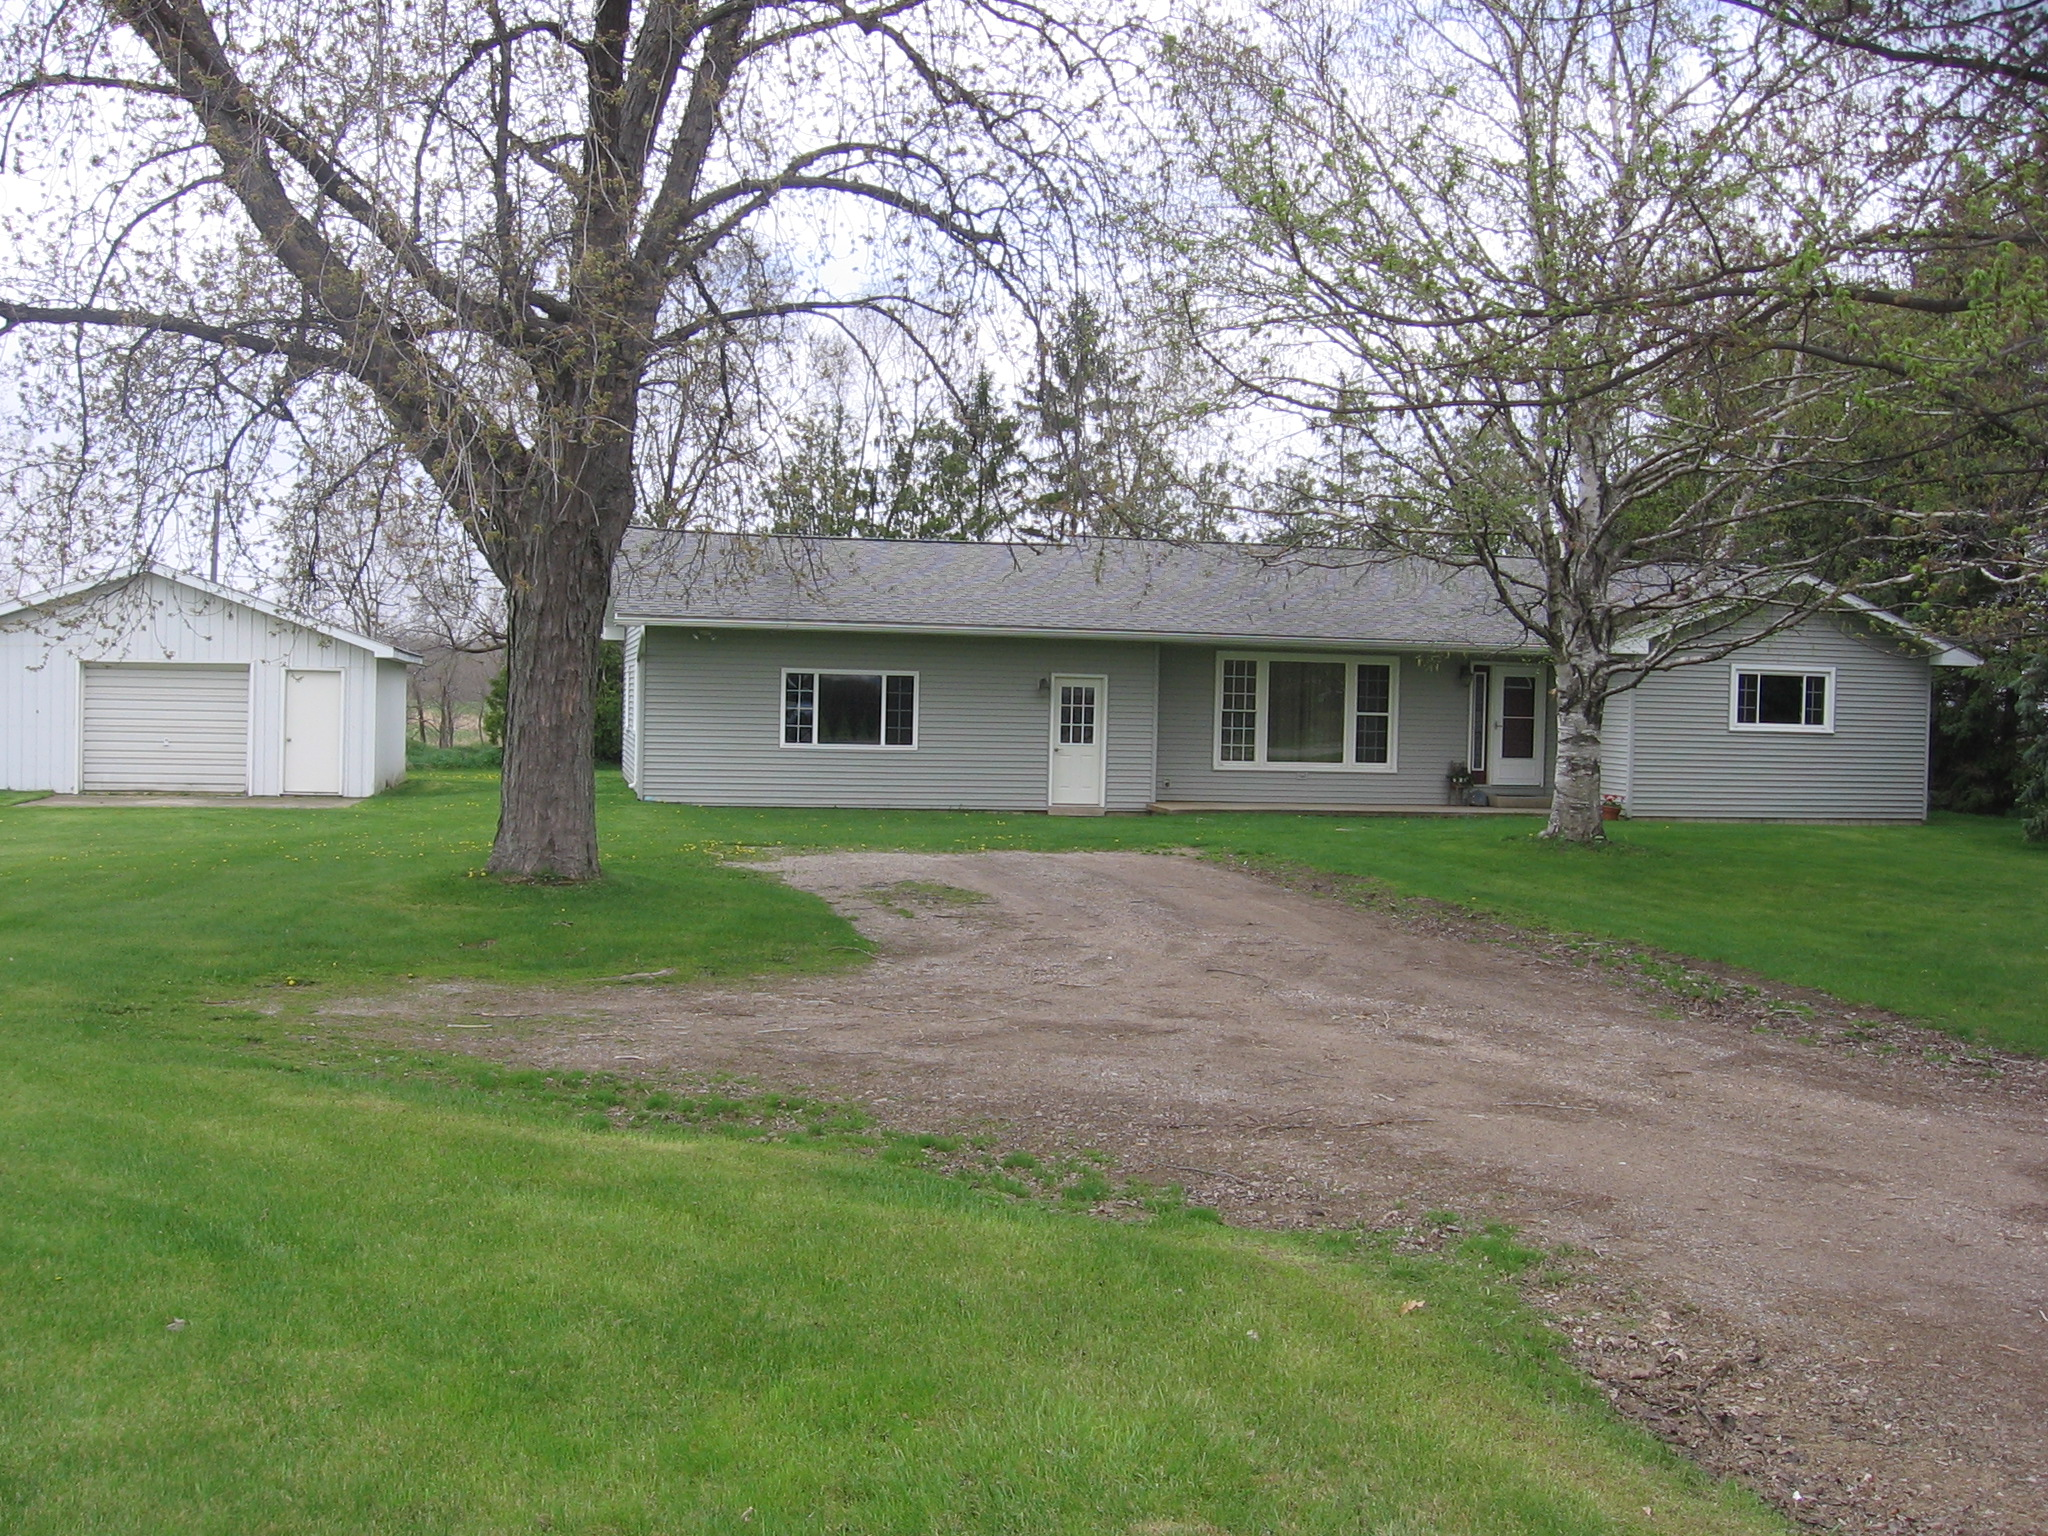 1219 N. Van Dyke Road, Bad Axe, Michigan 48413